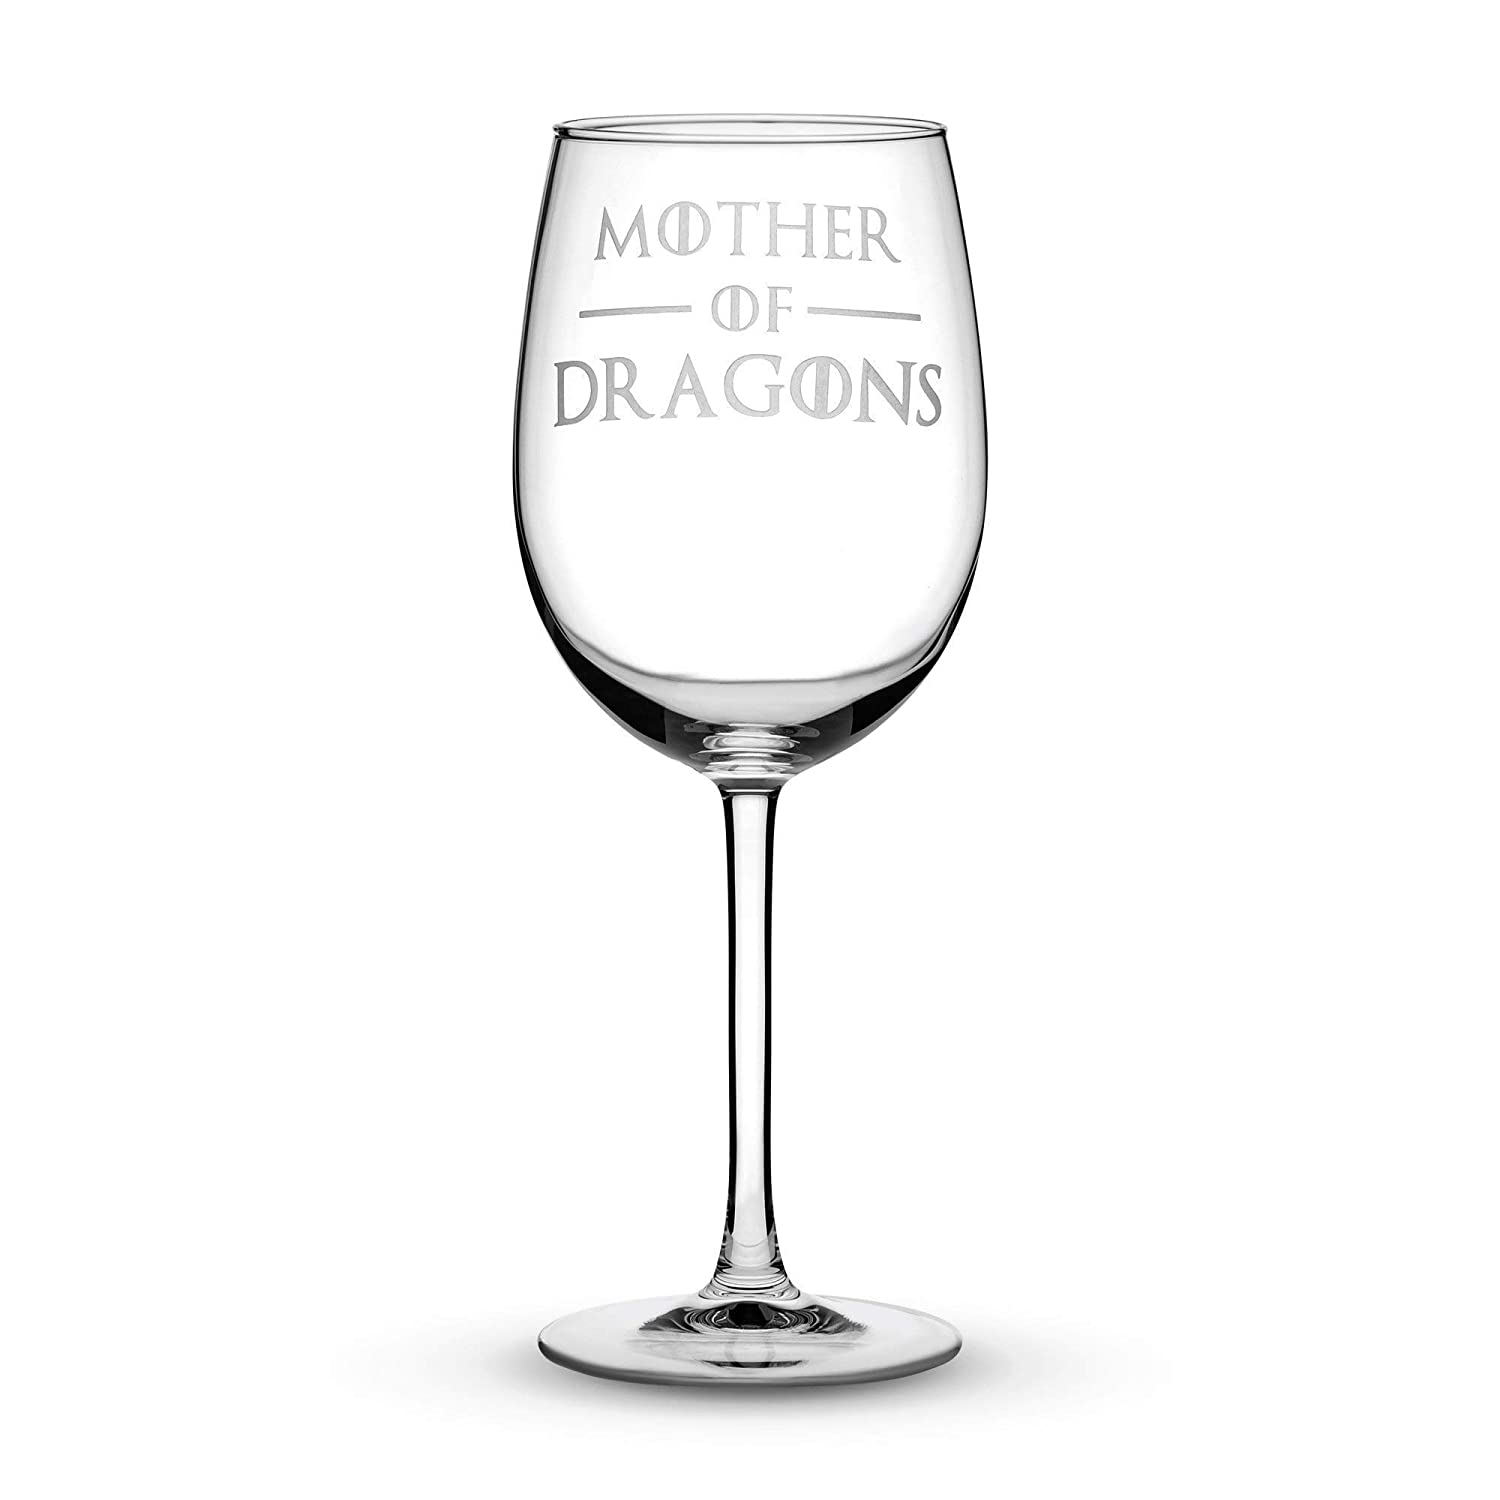 Integrity Bottles Premium Game of Thrones Wine Glass with Stem, Mother of Dragons, Hand Etched 15.4 oz Tulip Gift Glasses, Made in USA, Sand Carved by Integrity Bottles